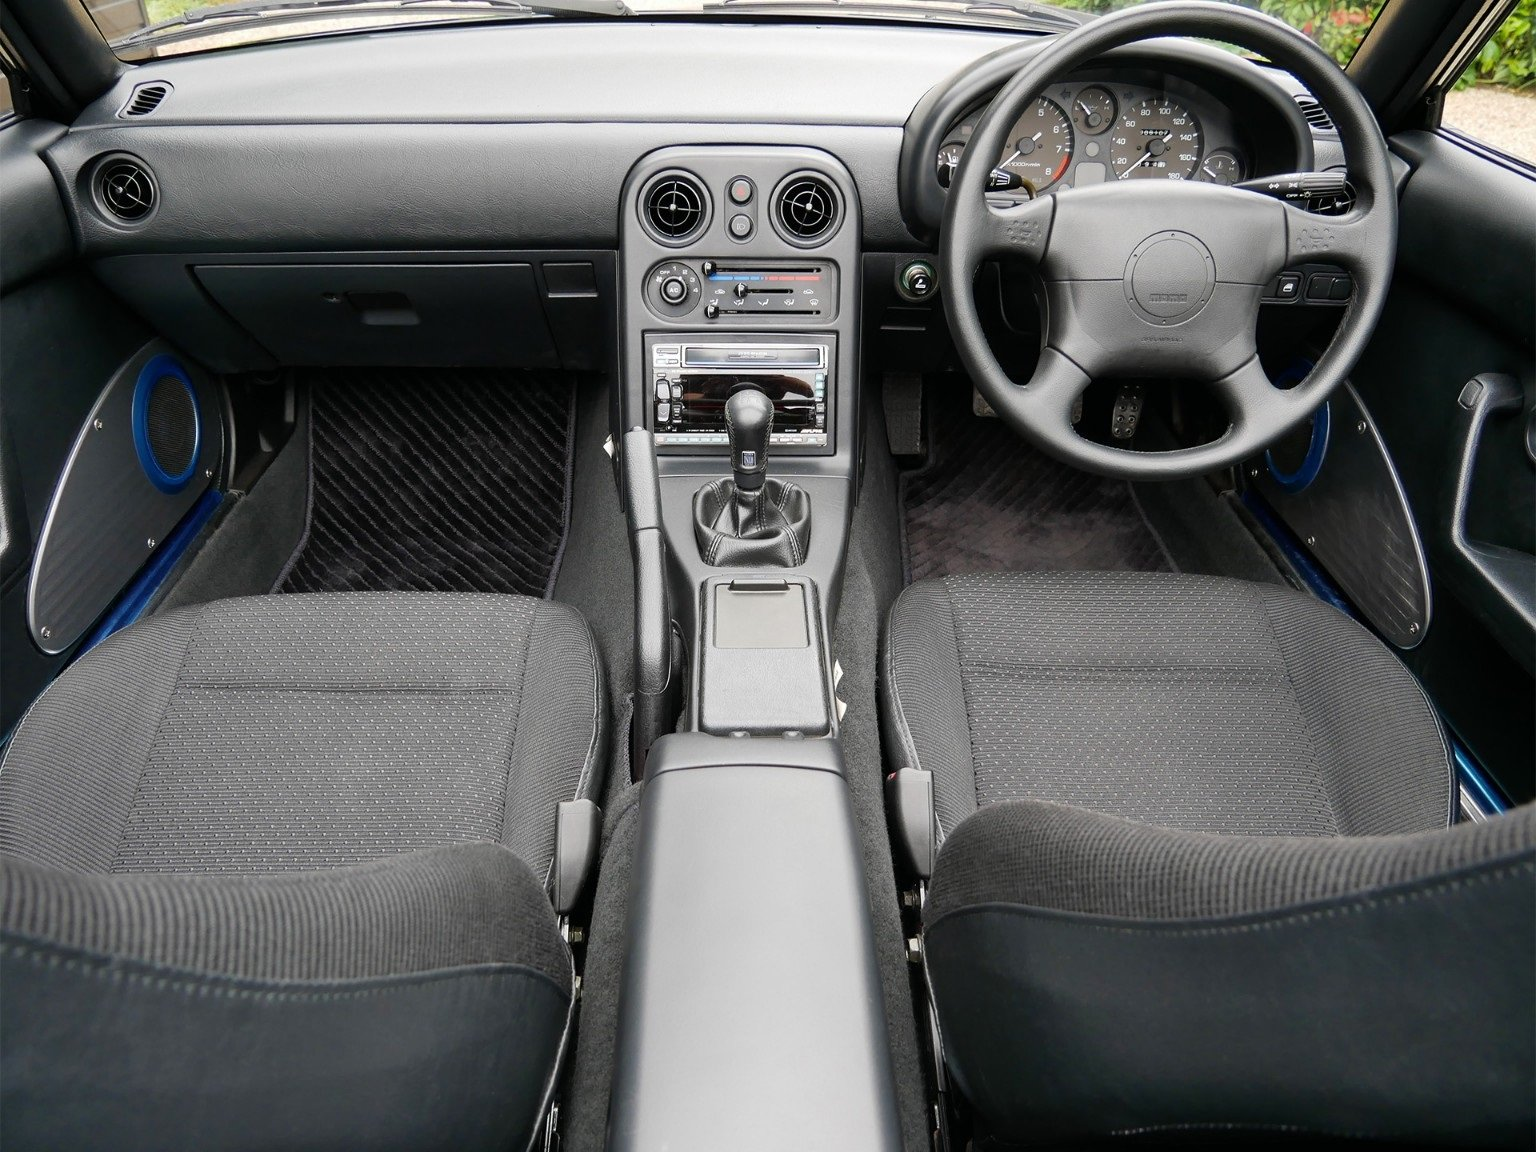 1997 Mazda MX-5 S-Special 1, 1.8 - Eunos Roadster - 3,000 MILES For Sale (picture 4 of 6)